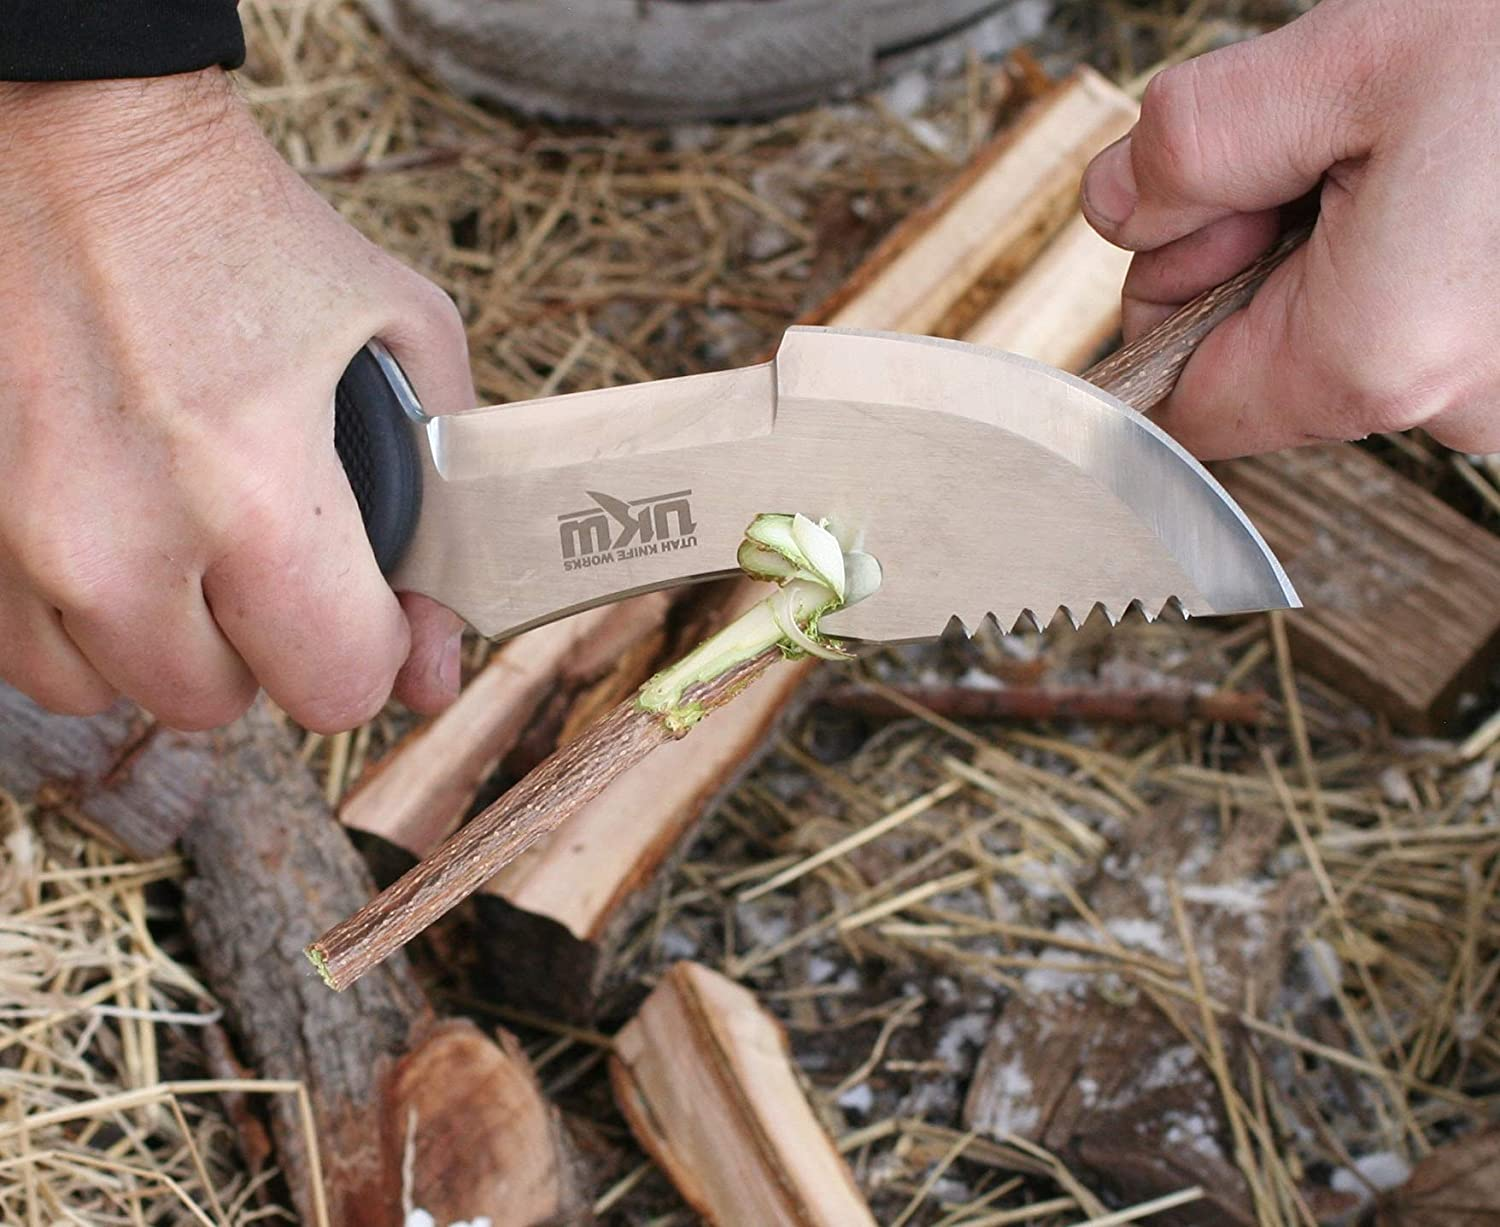 UKW Survivor Survival Tracker Knife with Gut/Utility Hook and Hammer - from  Original Tracker Knife Designer Robb Russon